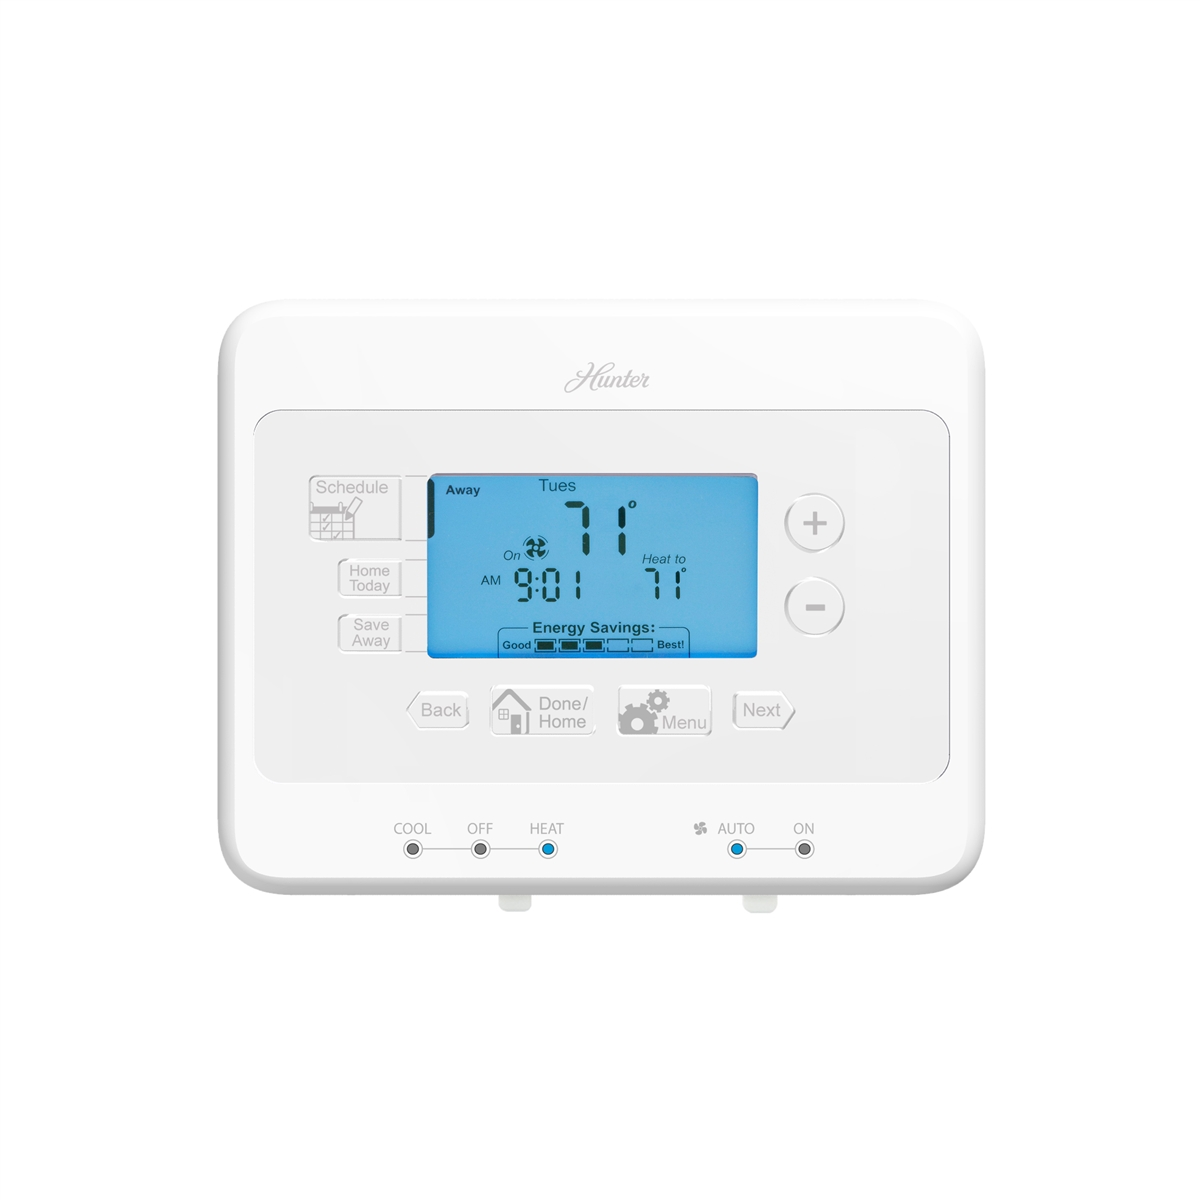 medium resolution of 44378 2 1410336795 universal 7 day programmable thermostat 44378 hunter 44378 wiring diagram